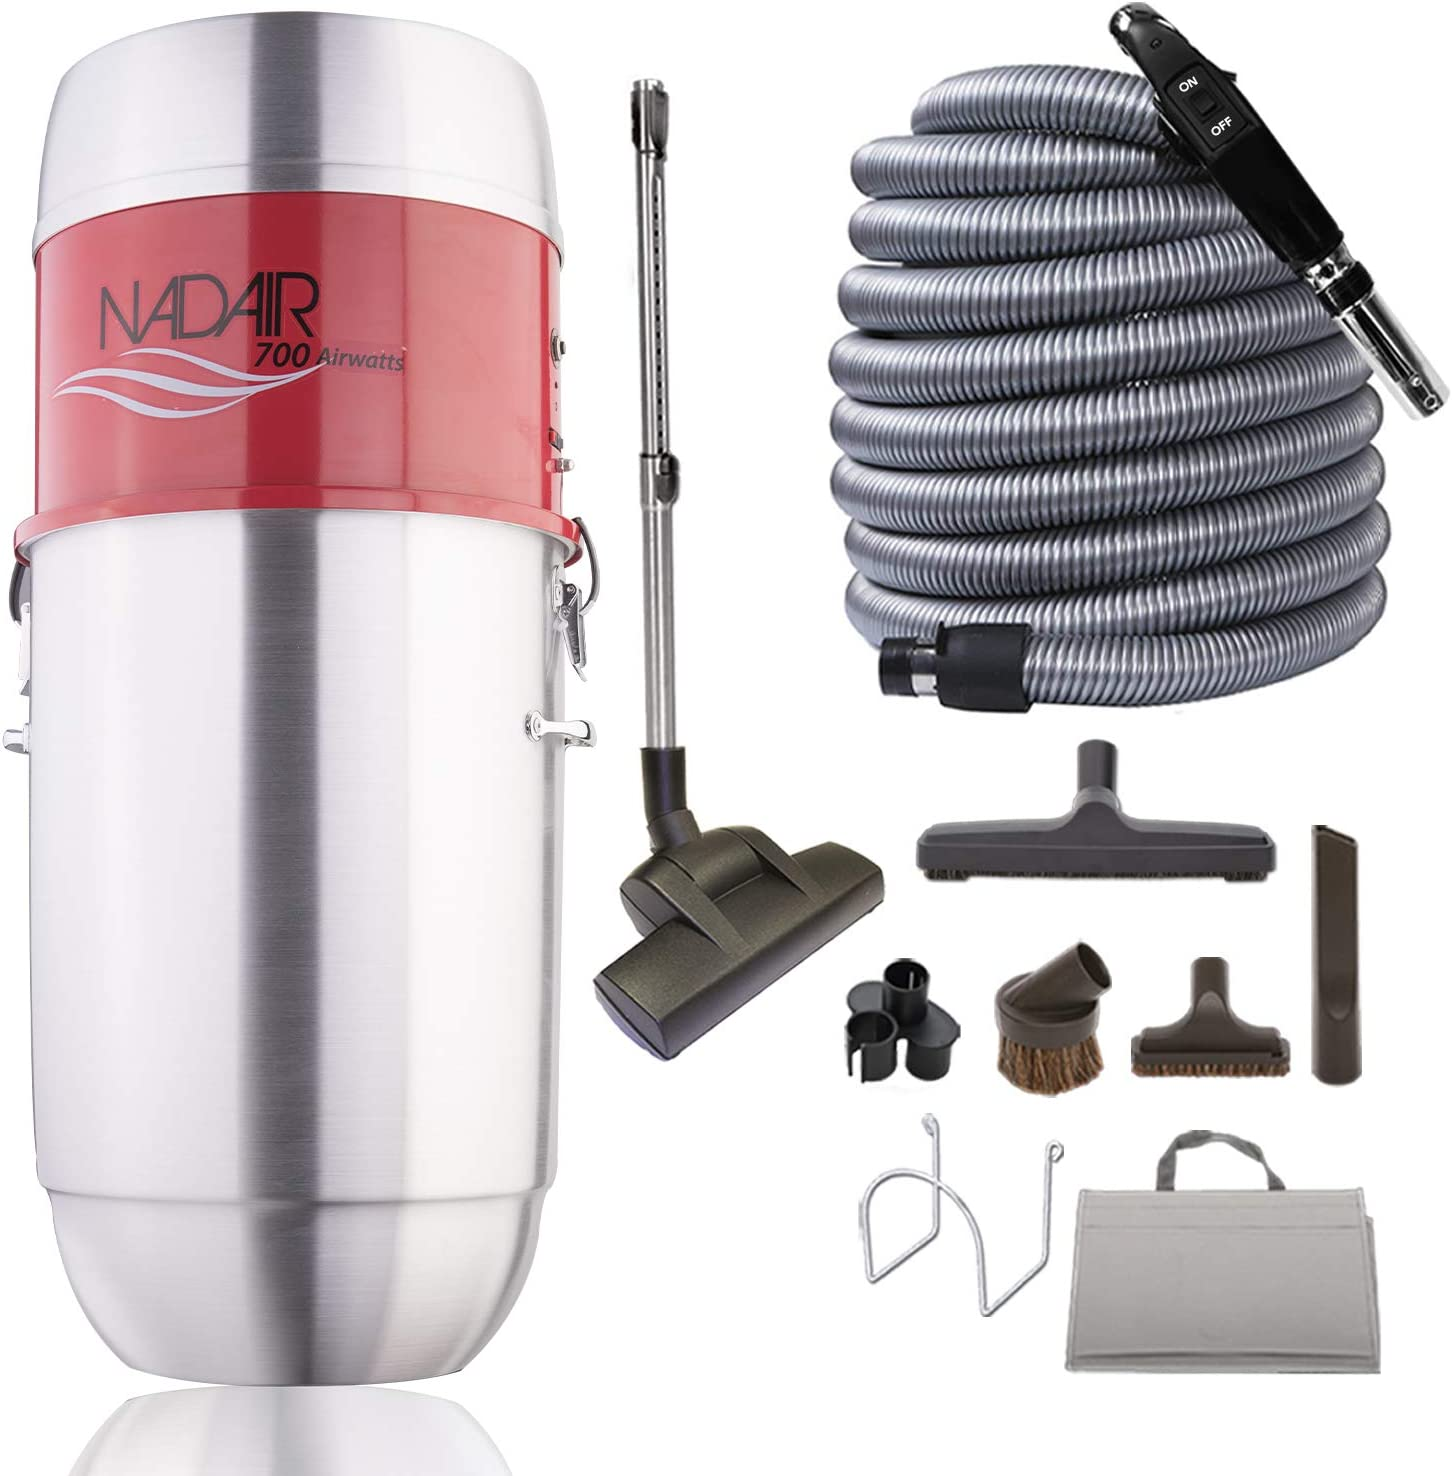 Nadair 700 AW Heavy Duty Central Vacuum System, Hybrid Filtration (with or Without Disposable Bags), 32L or 8.5 Gal, with 30ft Deluxe Plus Accessory Kit Included, Silver